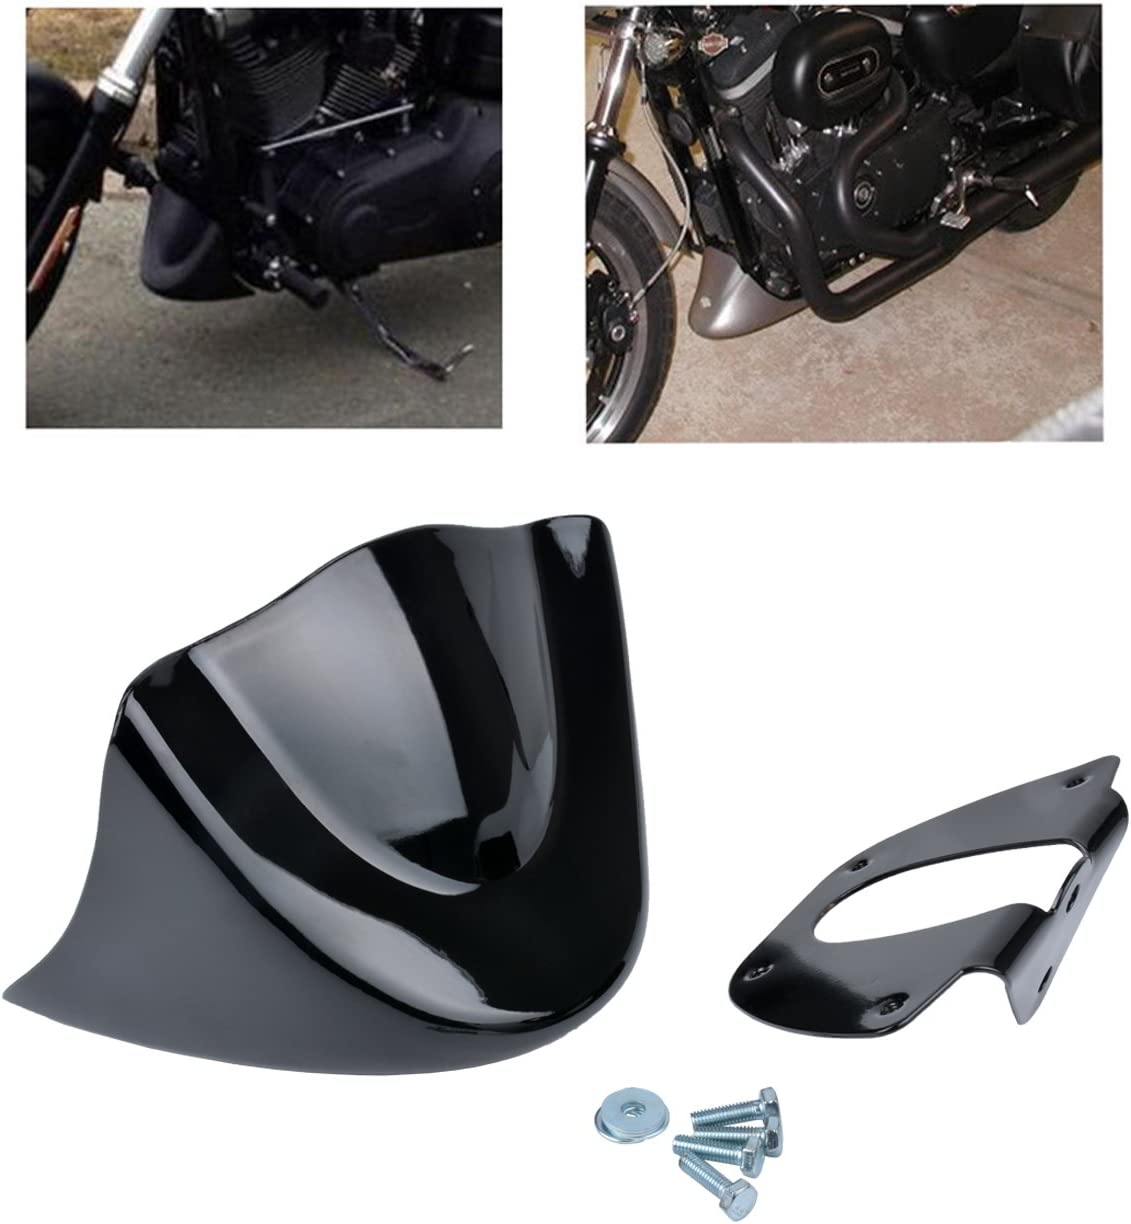 TUINCYN Universal Motorcycle Mudguard Cover kit Matte Black Chin Front Spoiler for Harley Davidson Sportster 2004-2014 XL883 XL1200 2004-2015